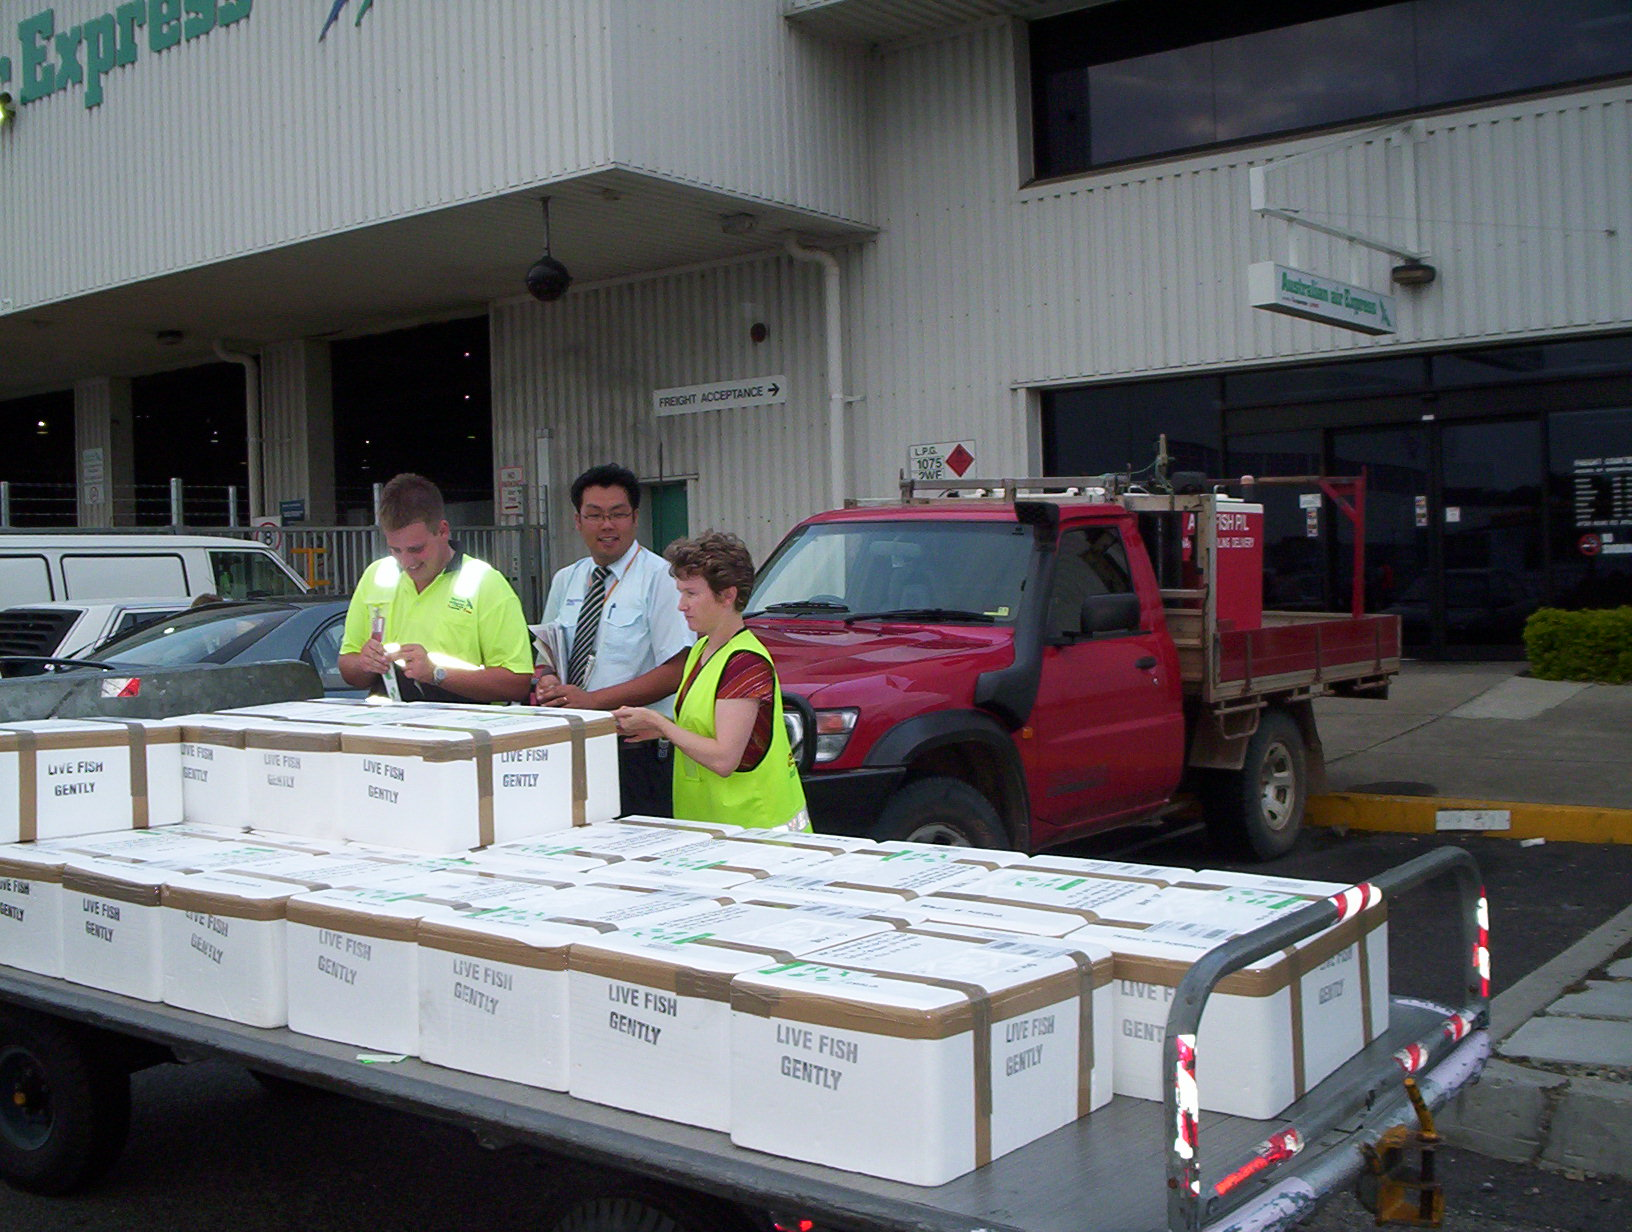 A shipment of Australian JADE perch fry at Queenslands Brisbane Airport